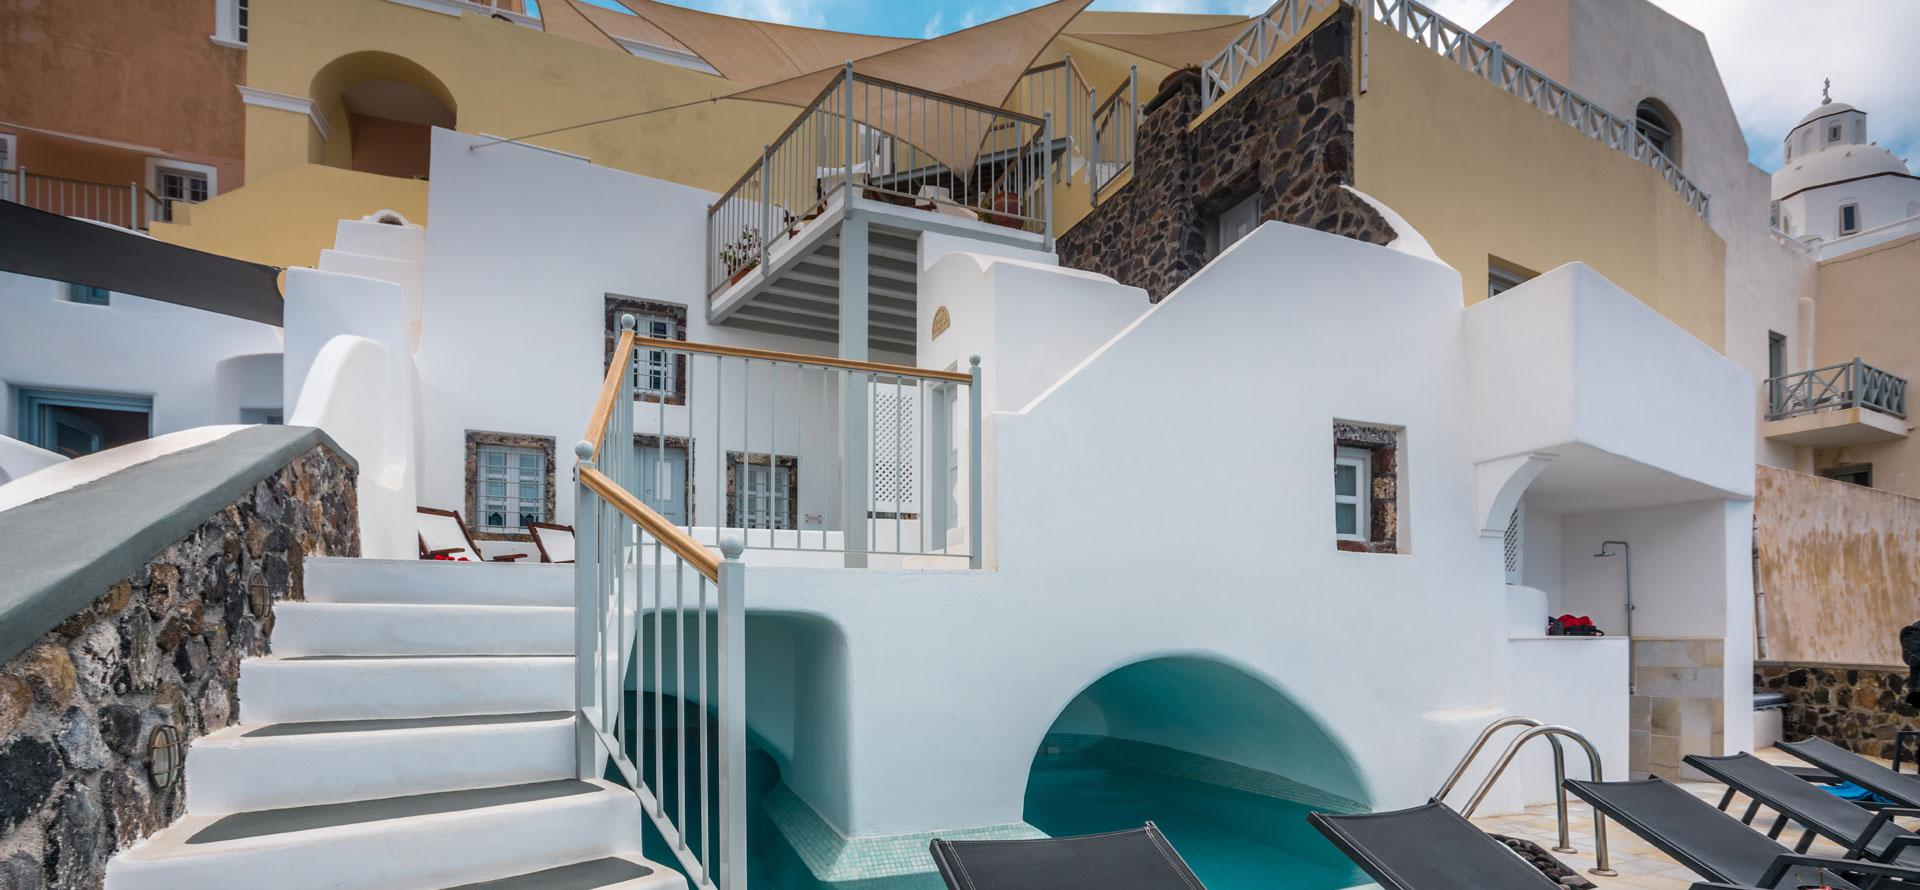 Cori Rigas Suites - Fira Santorini - Old Captain House -250 years of History